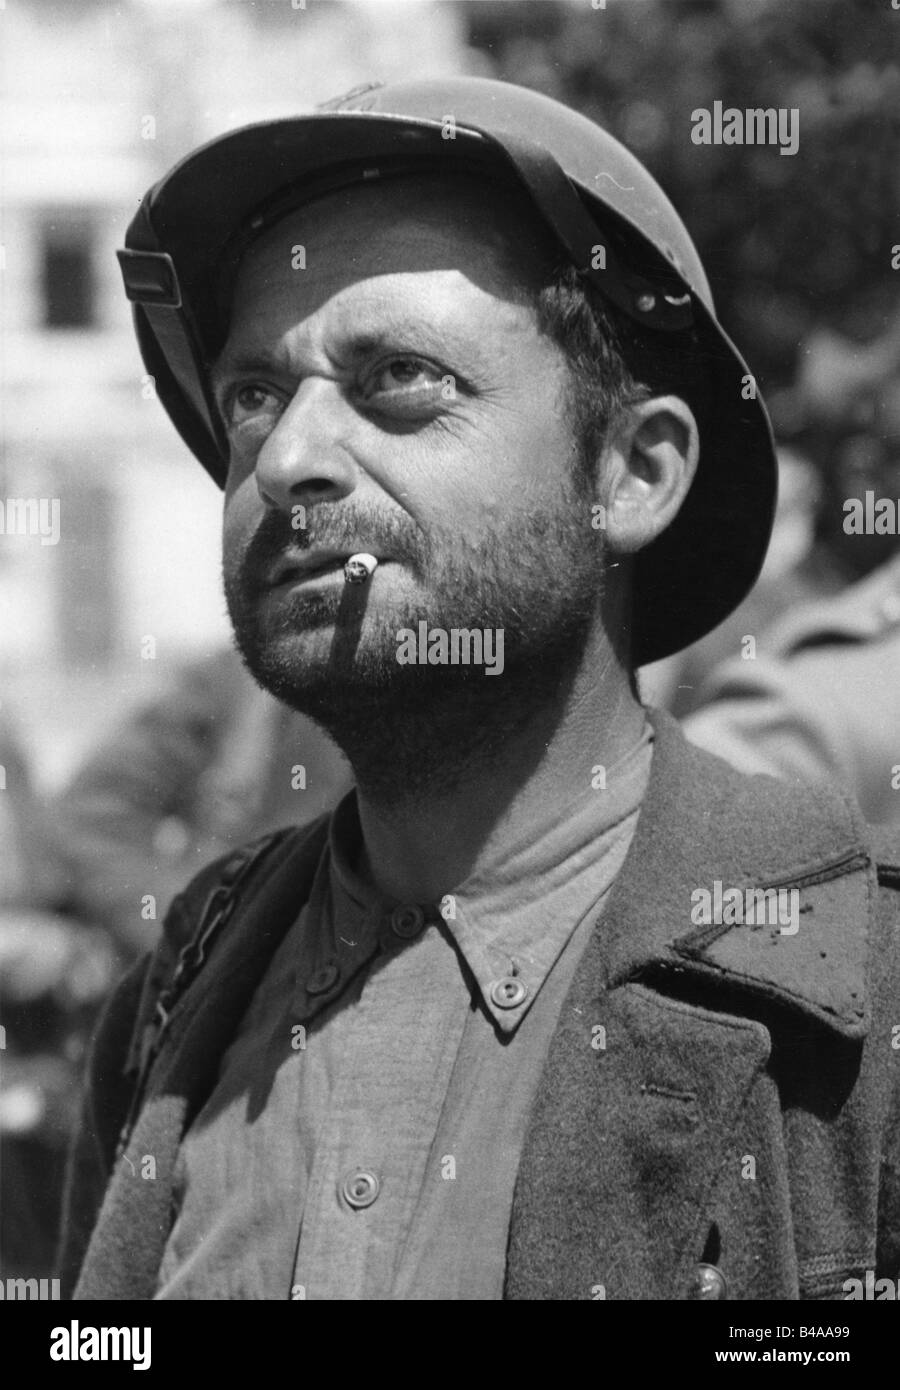 events, Second World War / WWII, France, captured French soldier, May 1940, Additional-Rights-Clearances-NA Stock Photo